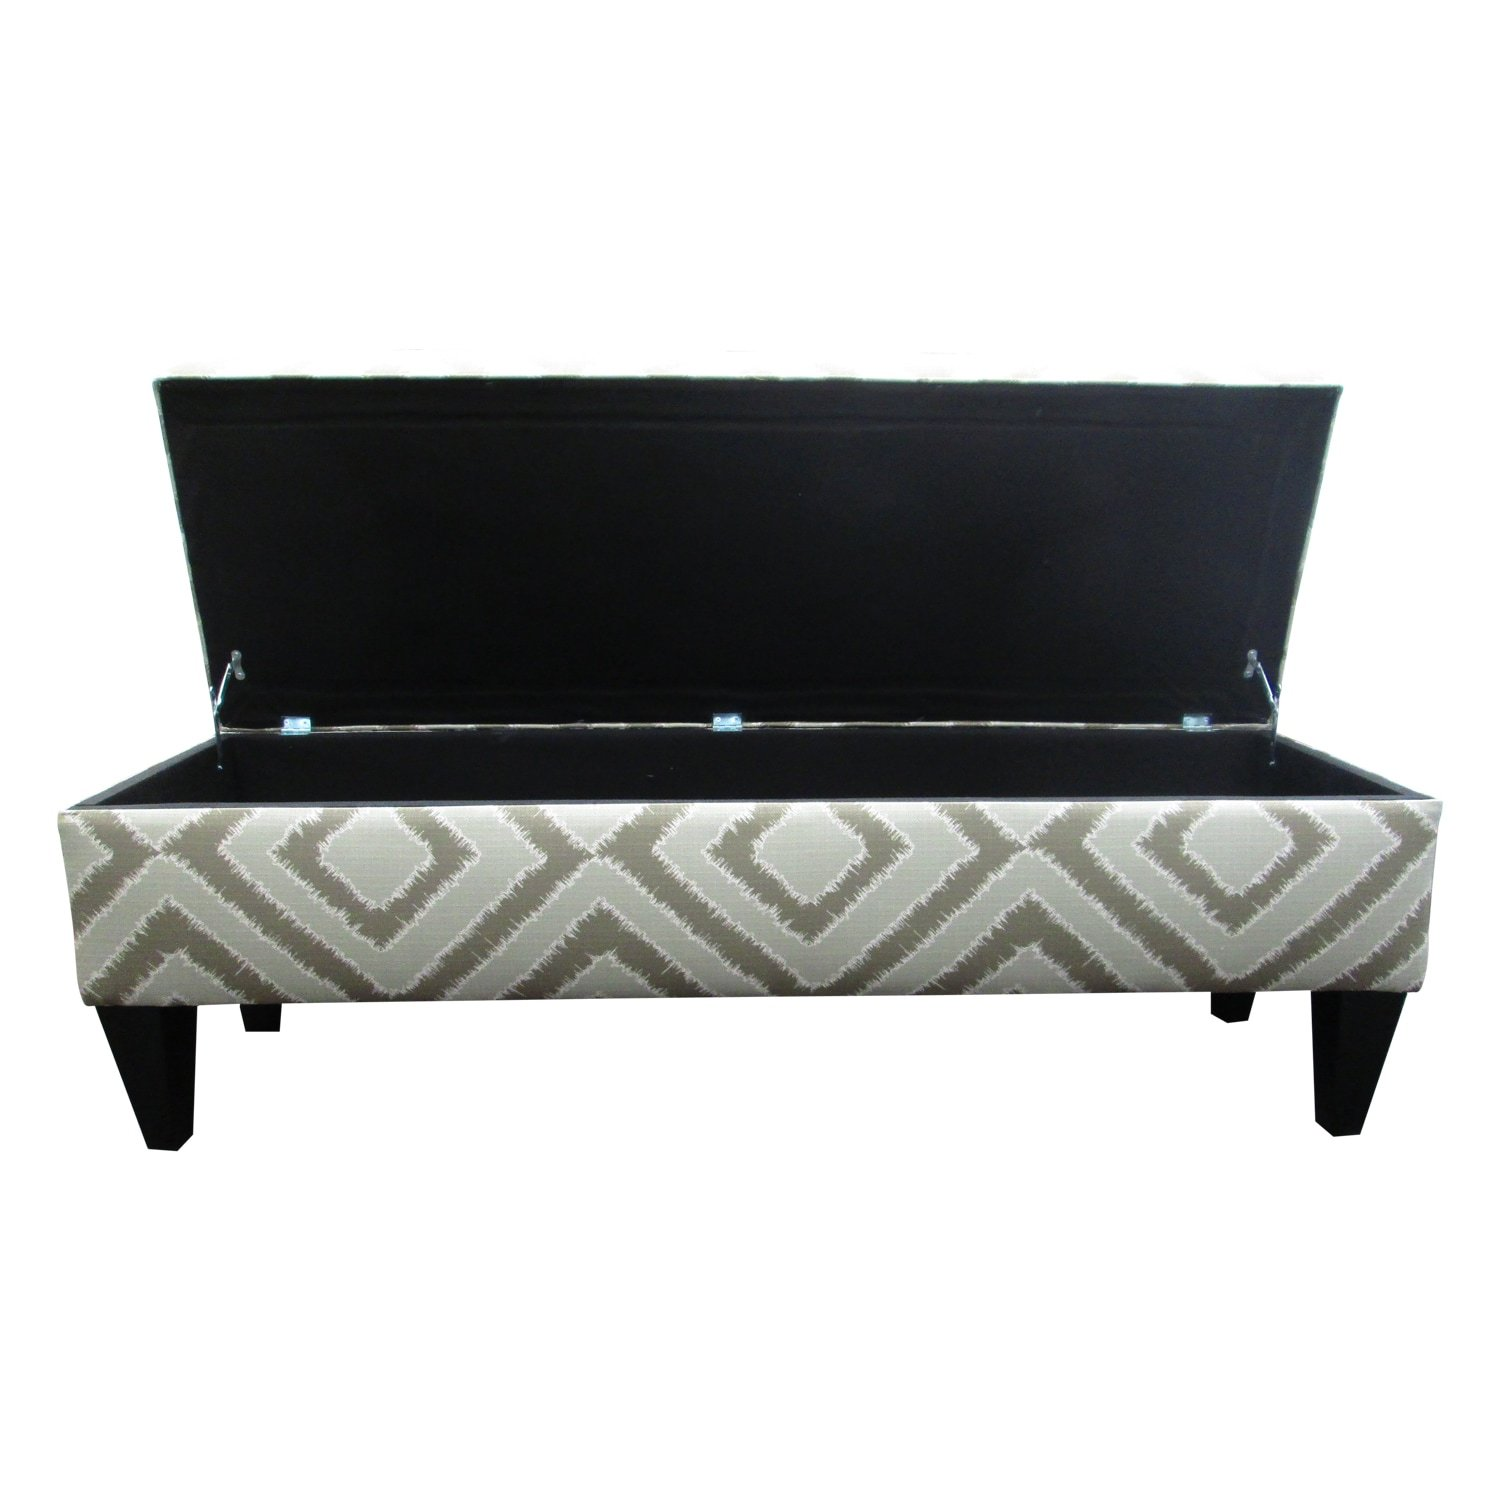 Sole Designs Nouvea Collection Upholstered Storage Bench with Built in Storage, 56''x19''x19'' Platinum